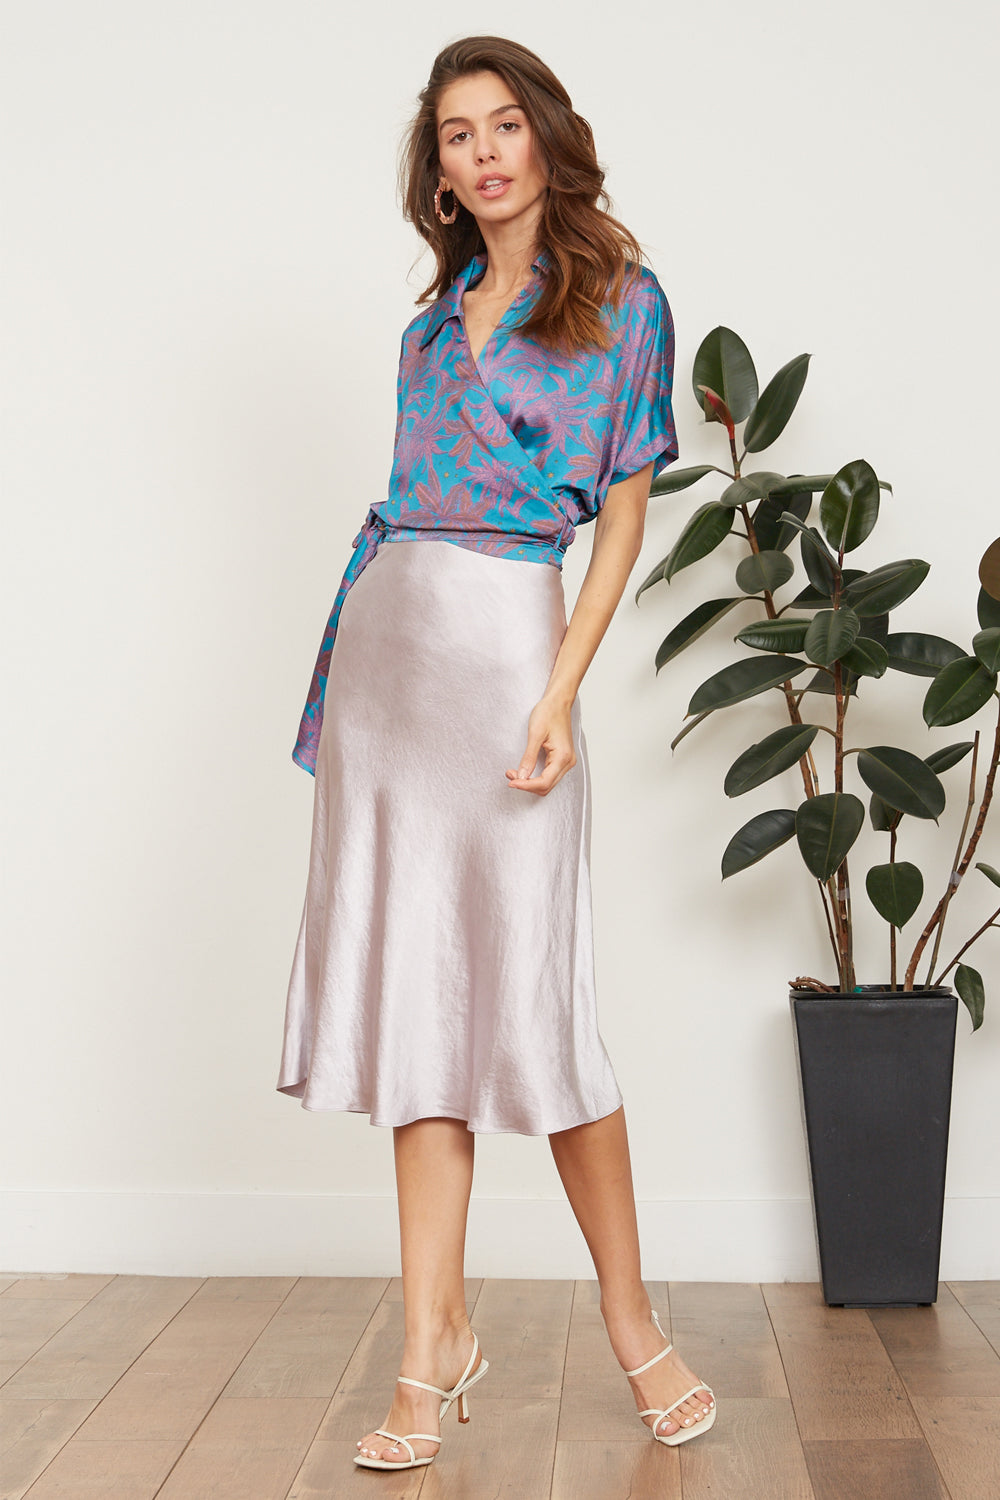 LUCY PARIS - Rumi Satin Skirt - LAVENDER